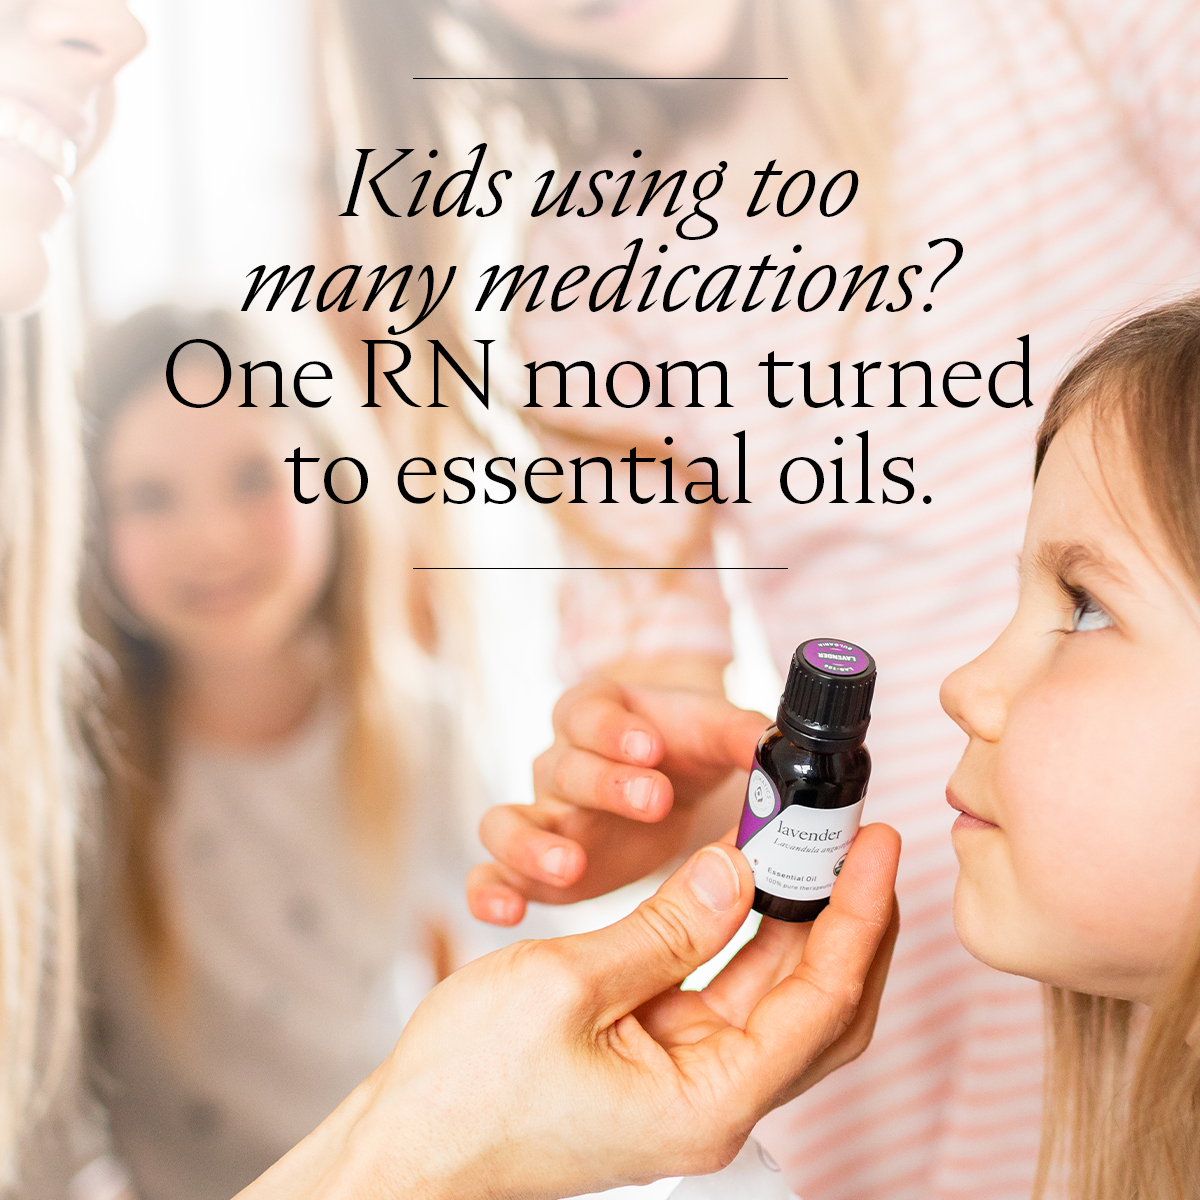 Kids using too many medications? One RN mom turned to essential oils.